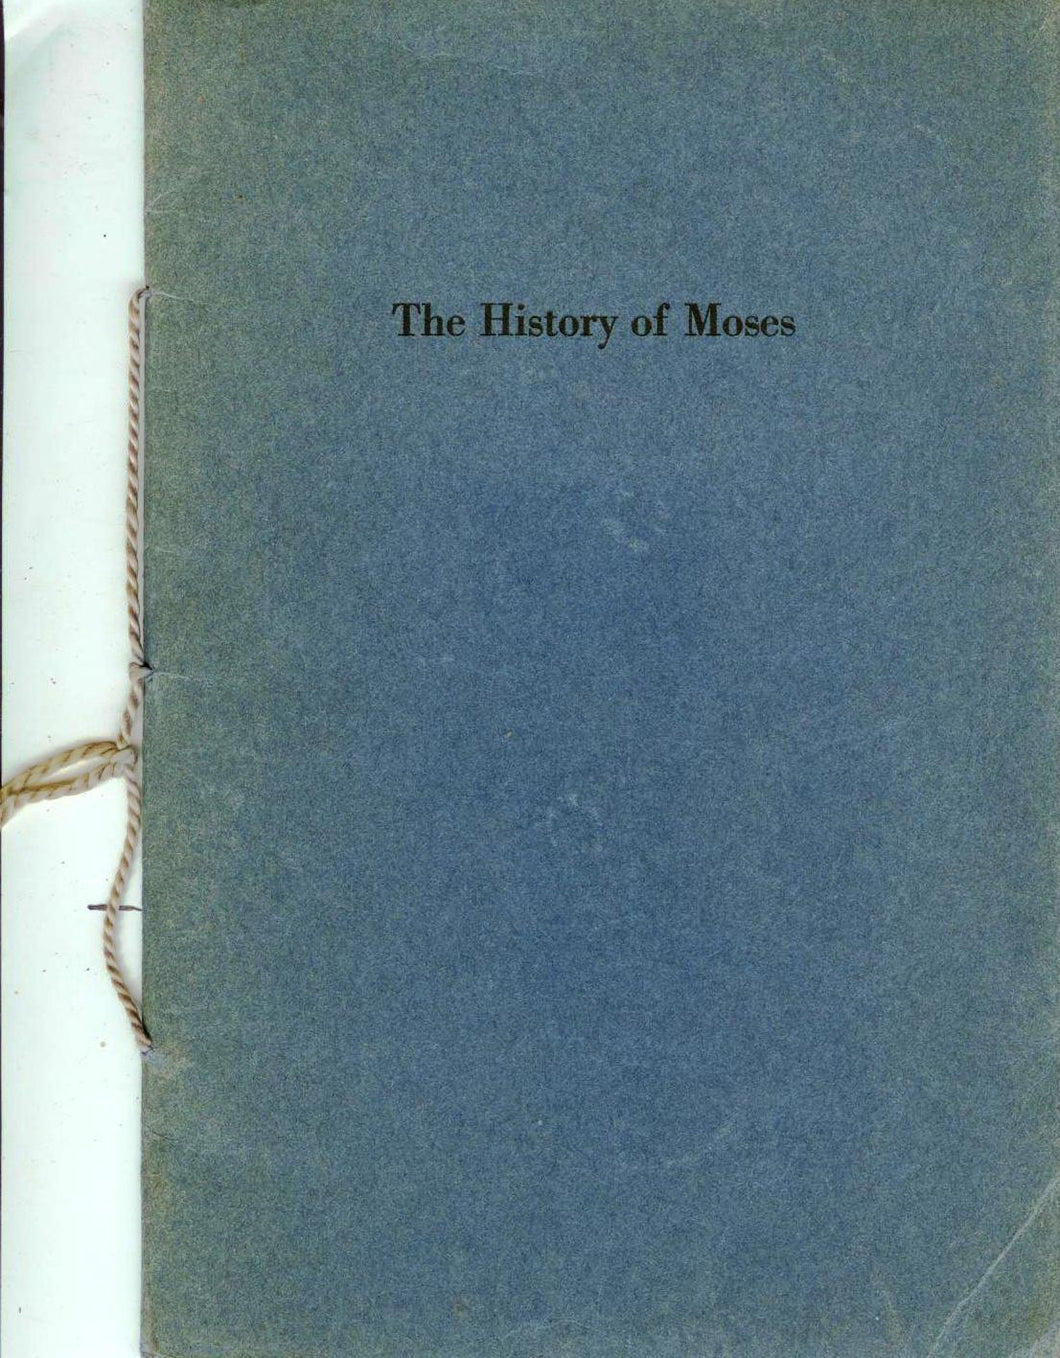 The History of Moses